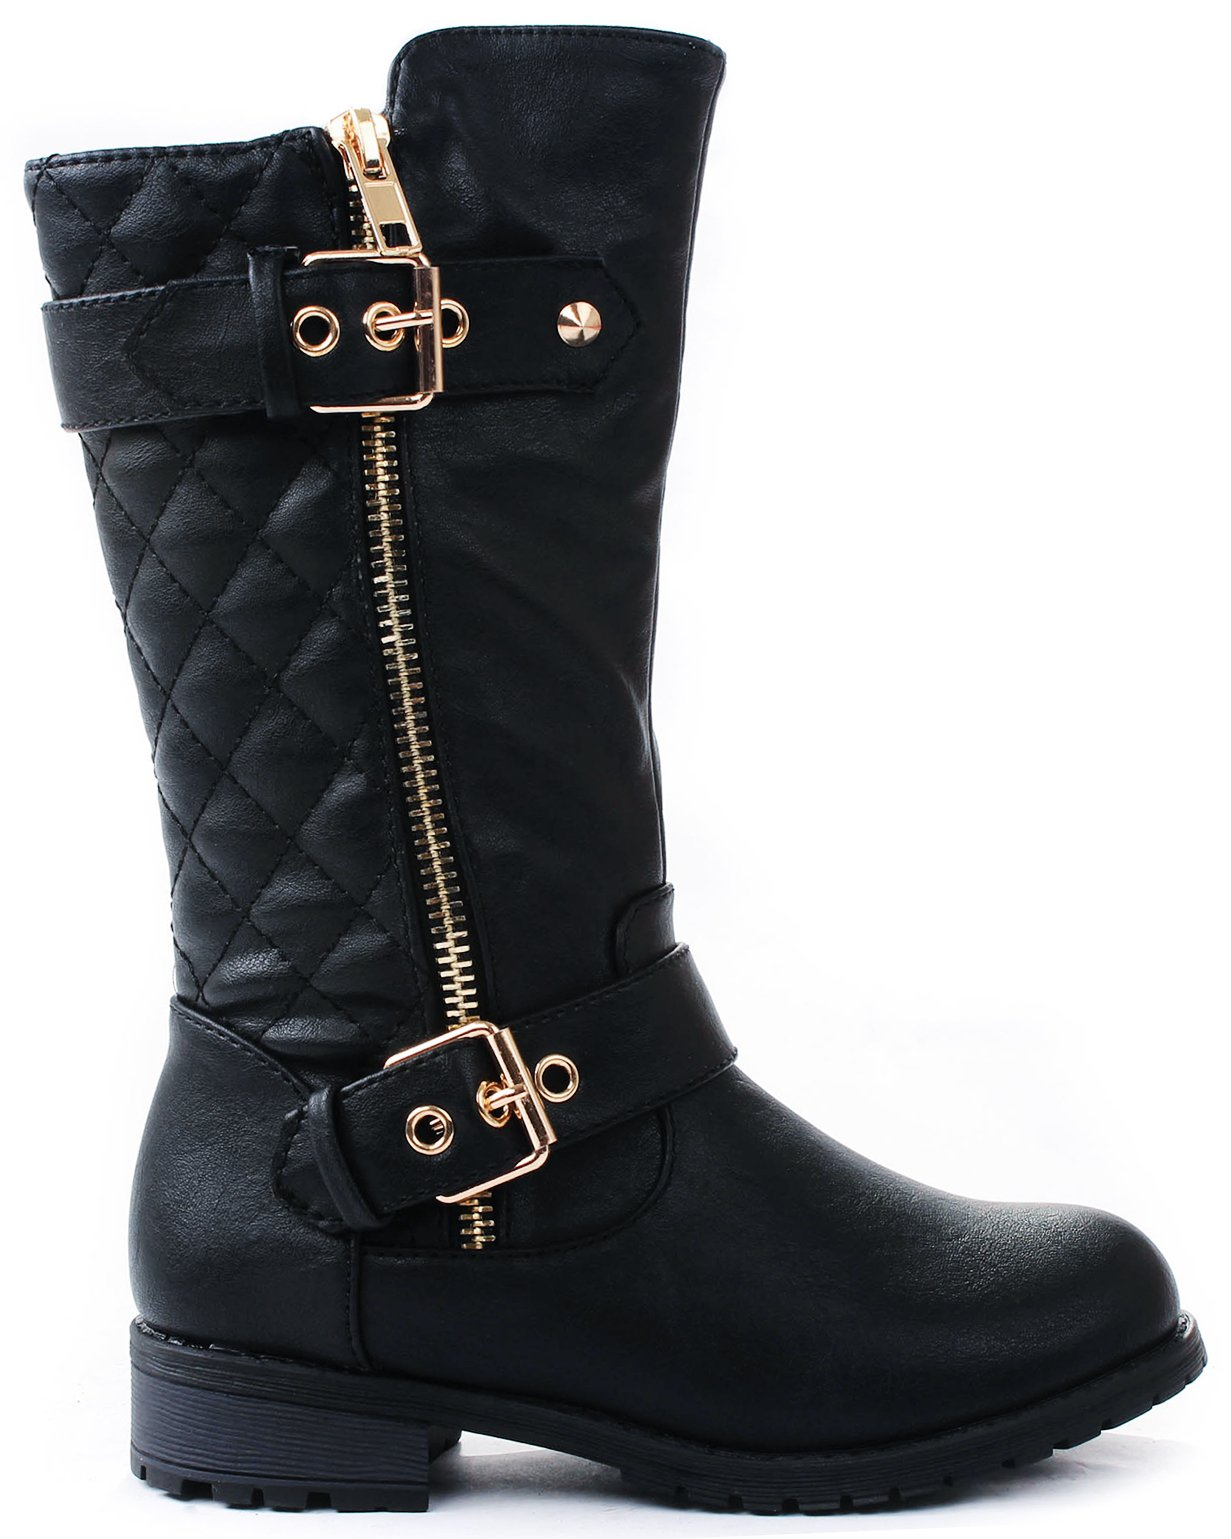 Kids Girls Mango21 Black Dual Buckle/Zipper Quilted Mid Calf Motorcycle Boots-3